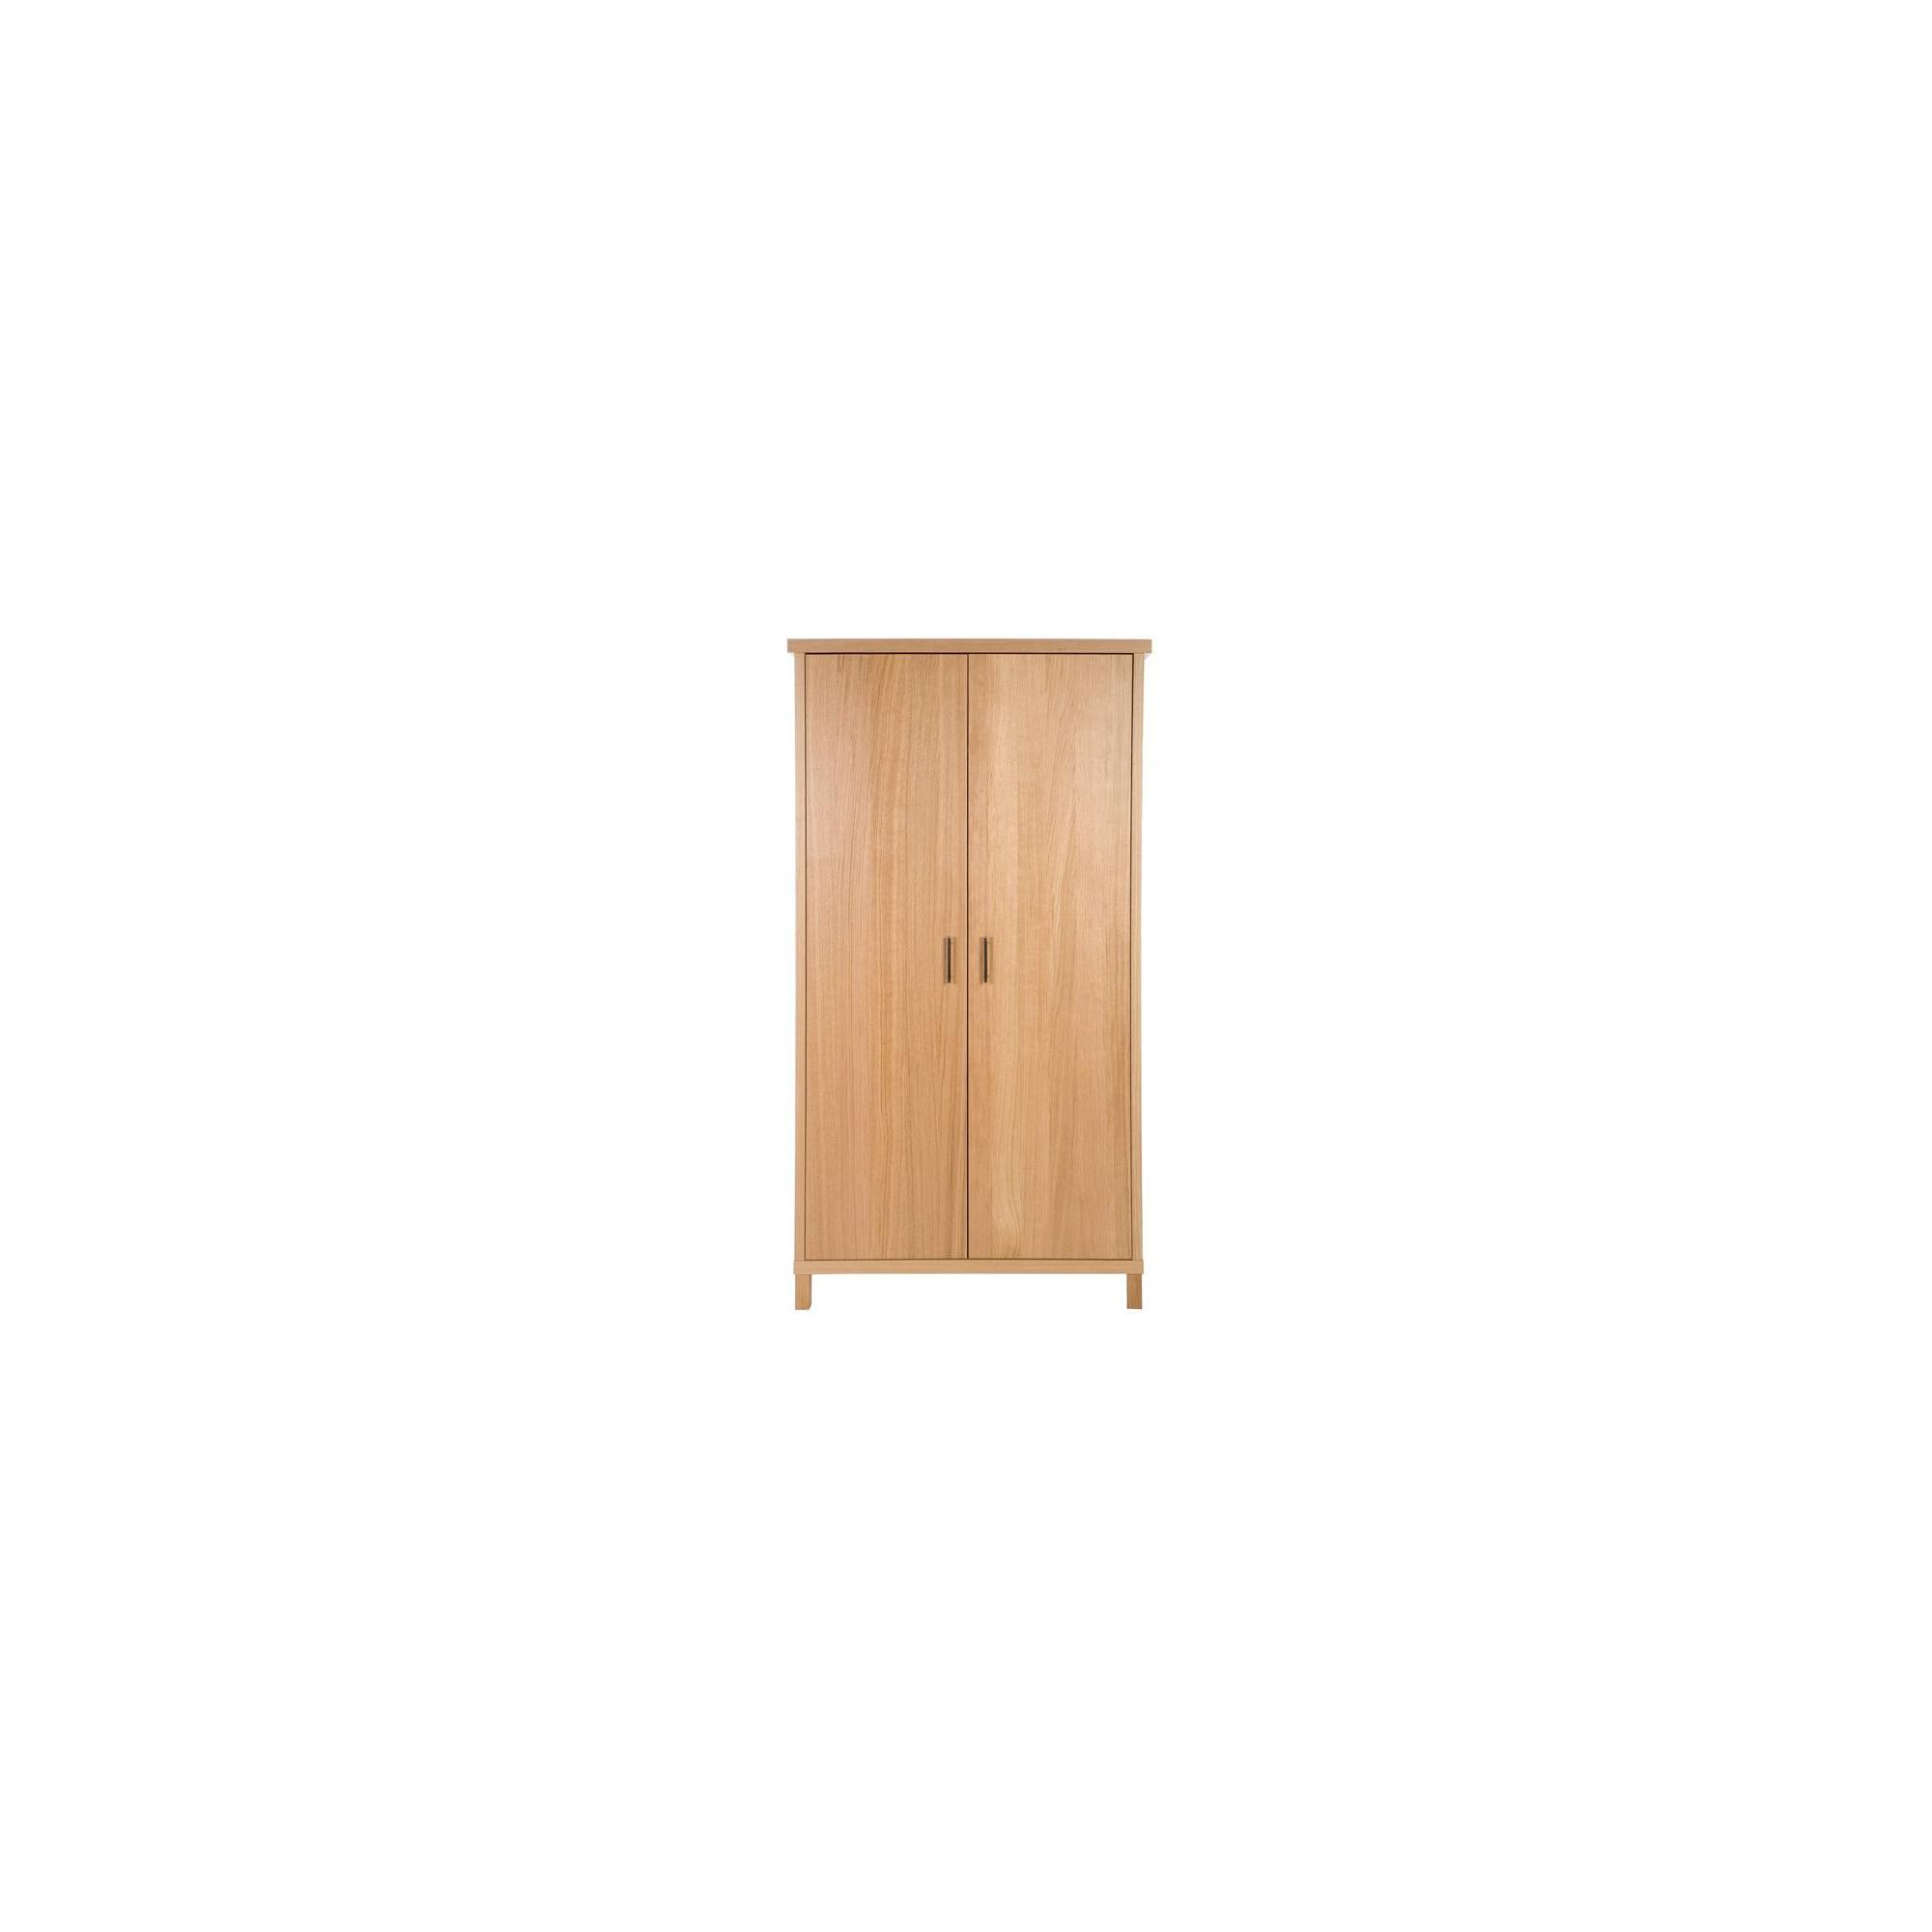 Urbane Designs Vettori Oak Bedroom 2 Door Wardrobe at Tescos Direct